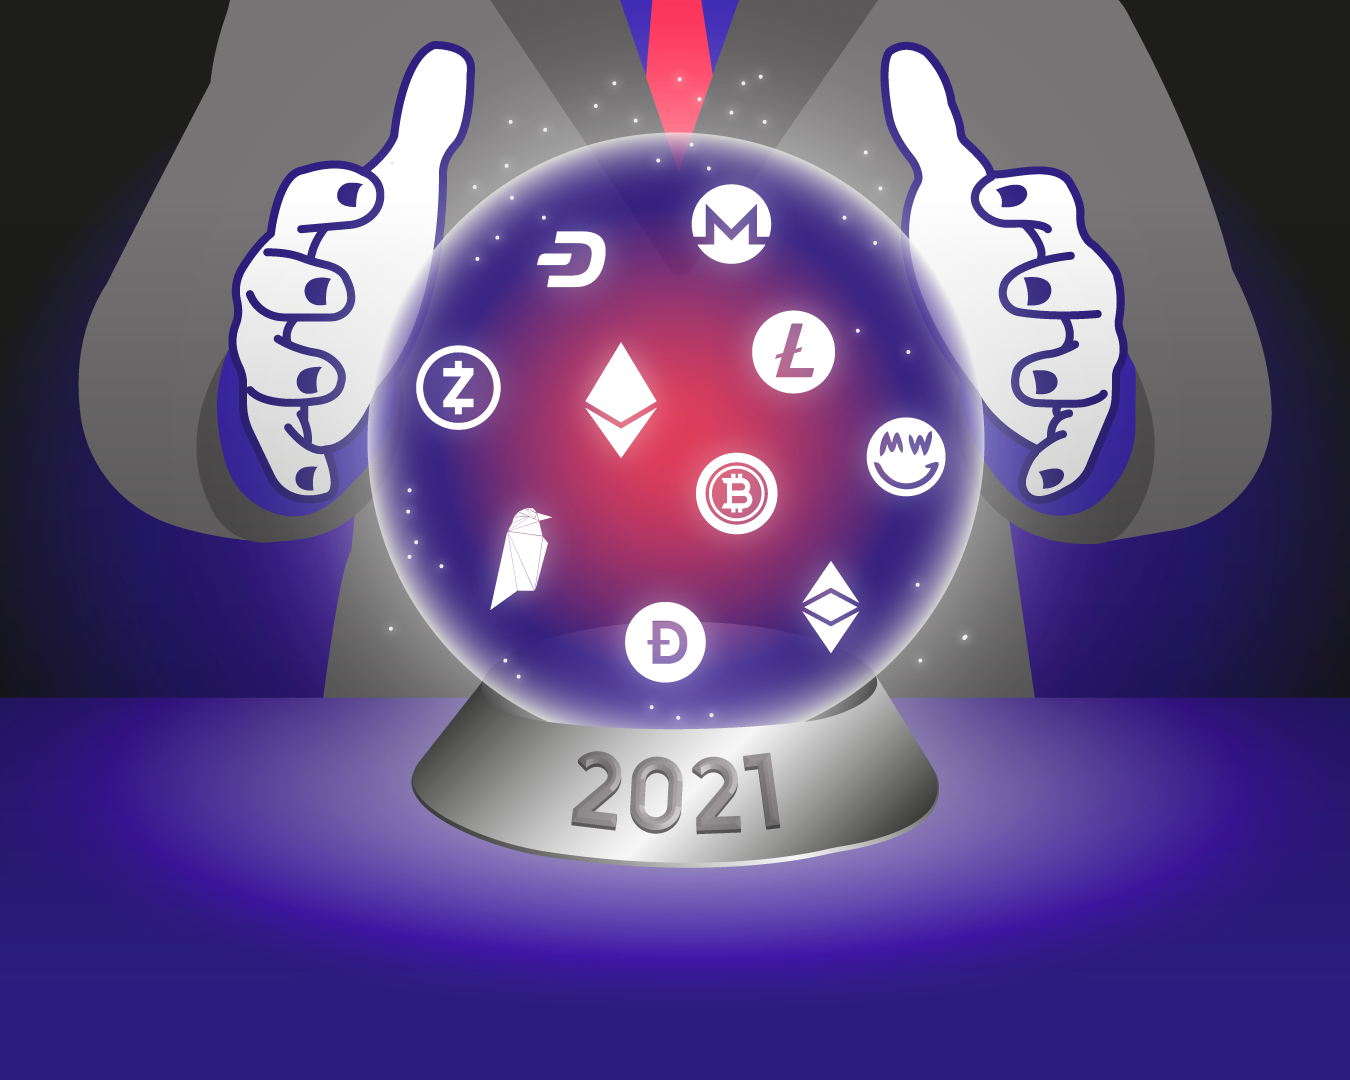 coins to mine in 2021